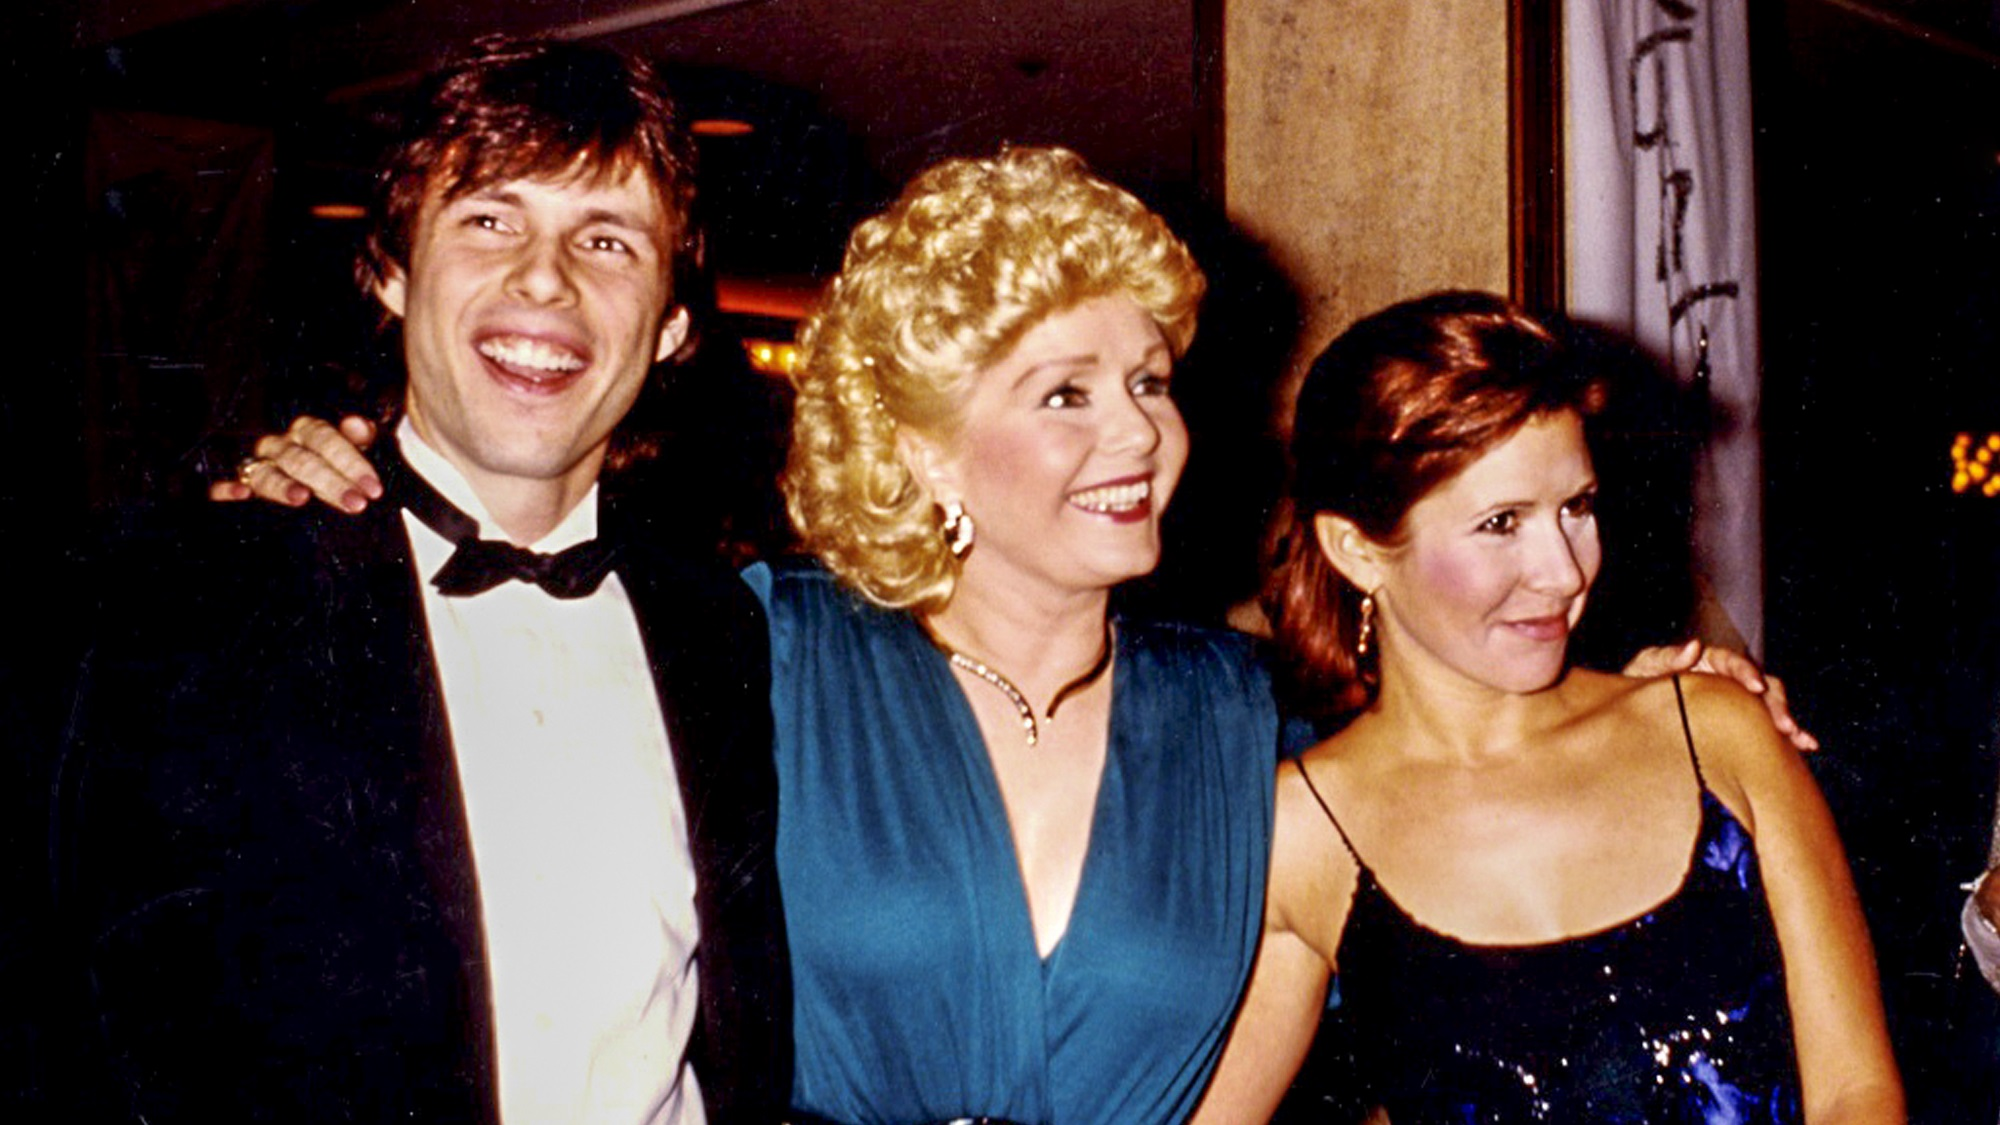 Bright Lights: Starring Carrie Fisher and Debbie Reynolds S.T.F.